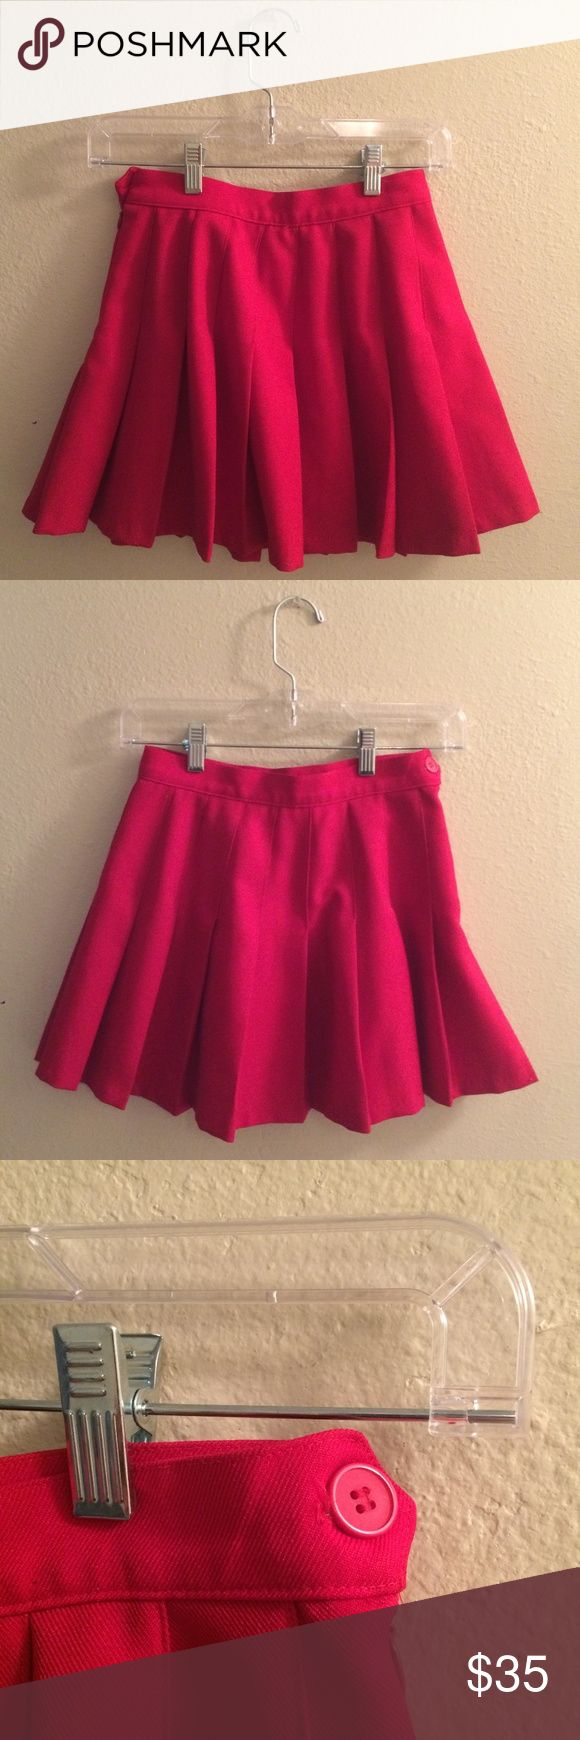 ✨ Valentine's Day! American Apparel tennis skirt ✨ An essential piece of the perfect Valentine's Day outfit! Cute, cherry red, mini tennis skirt from American Apparel. High-waisted, with a side zip and button closure. Please let me know if you have any questions or would like to make an offer! American Apparel Skirts Mini